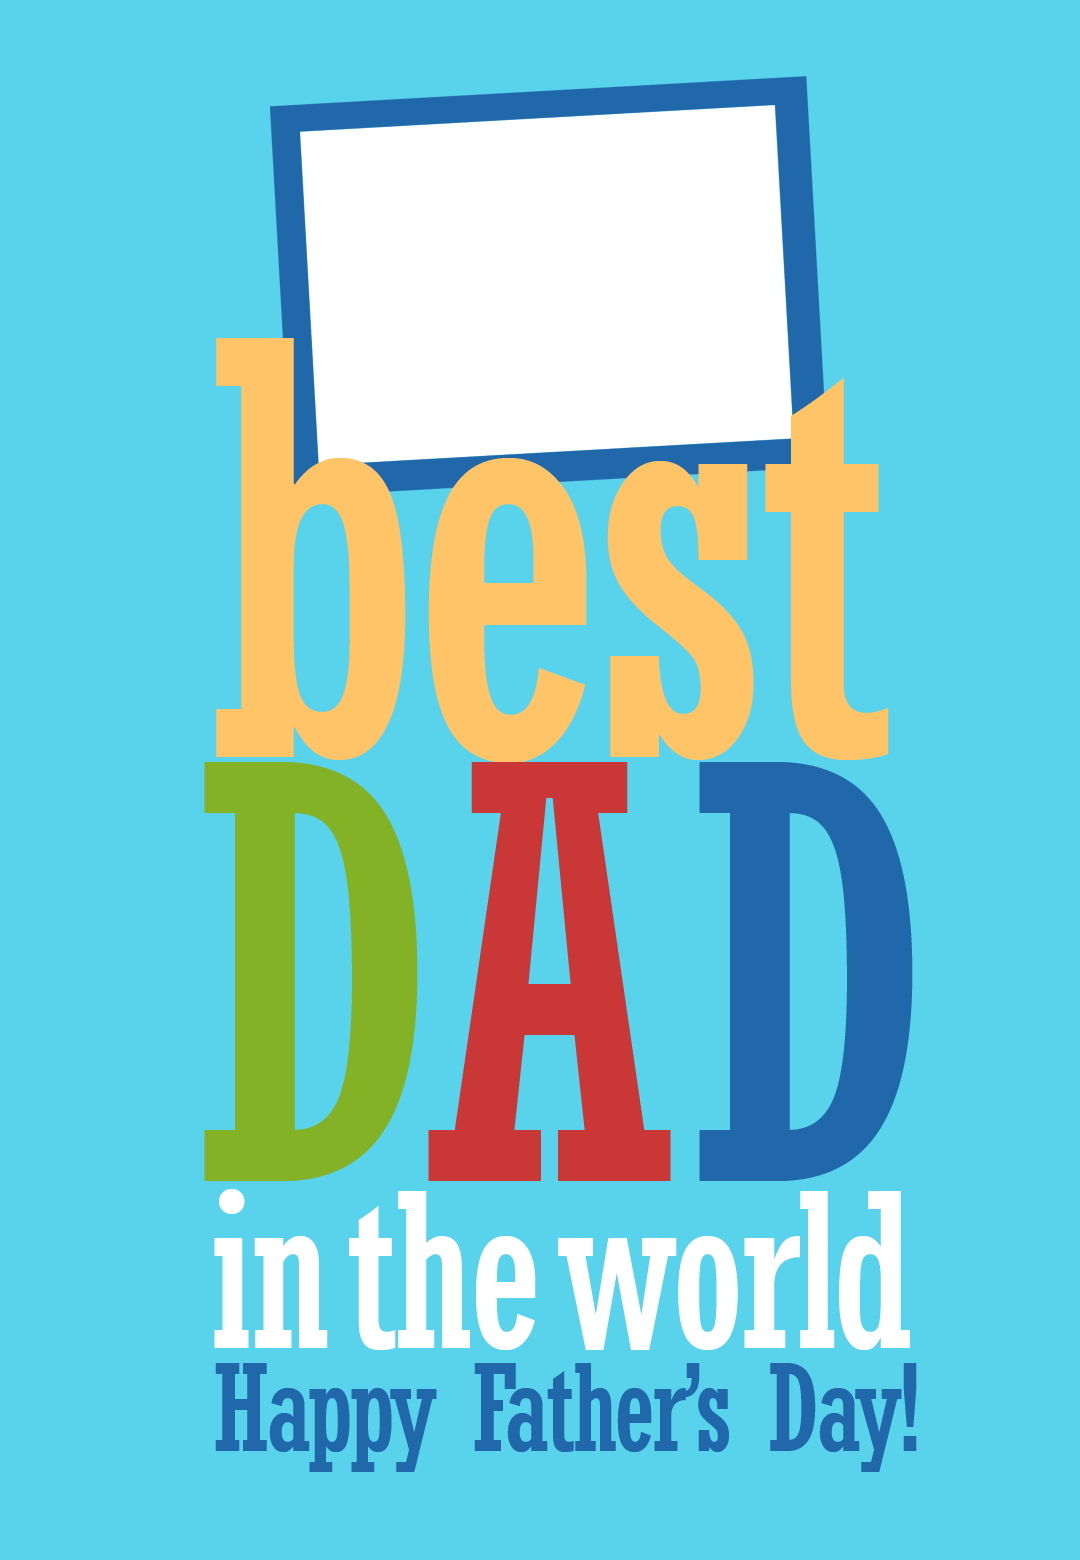 Free Printable Customizable Best Dad In The World Greeting Card Fathersday Happy Fathers Day World Father S Day Fathers Day Cards